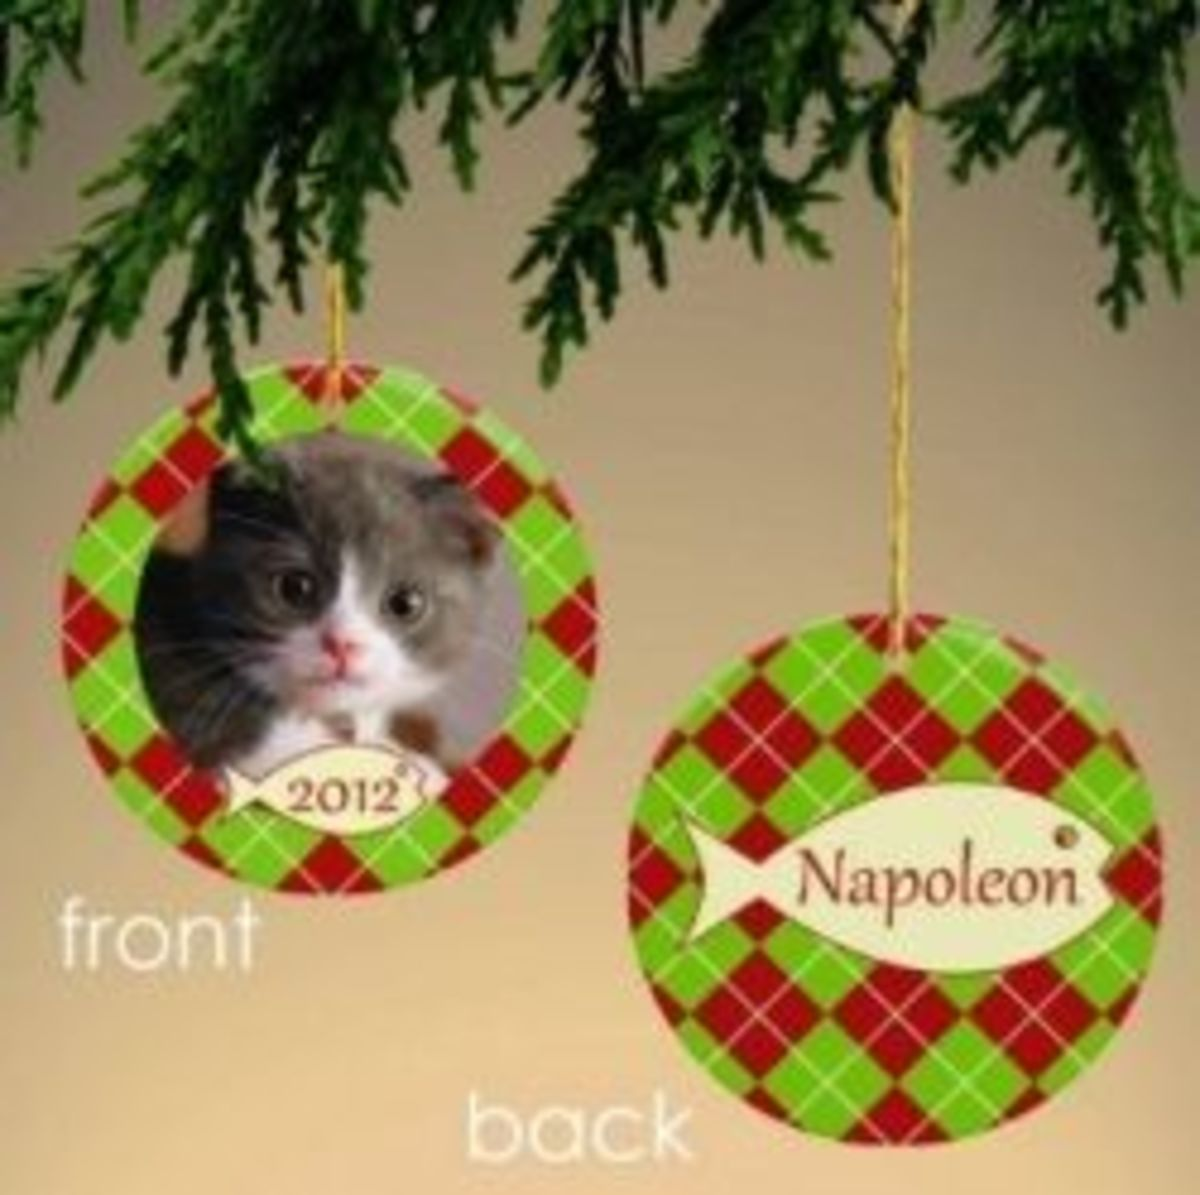 Personalize Your Cat Ornament With A Picture!   Add a photo of your cat to one side and add your cat's name to the other side, plus you can also add the year!  This image is from Amazon and you can find the personalized cat ornament on this page.